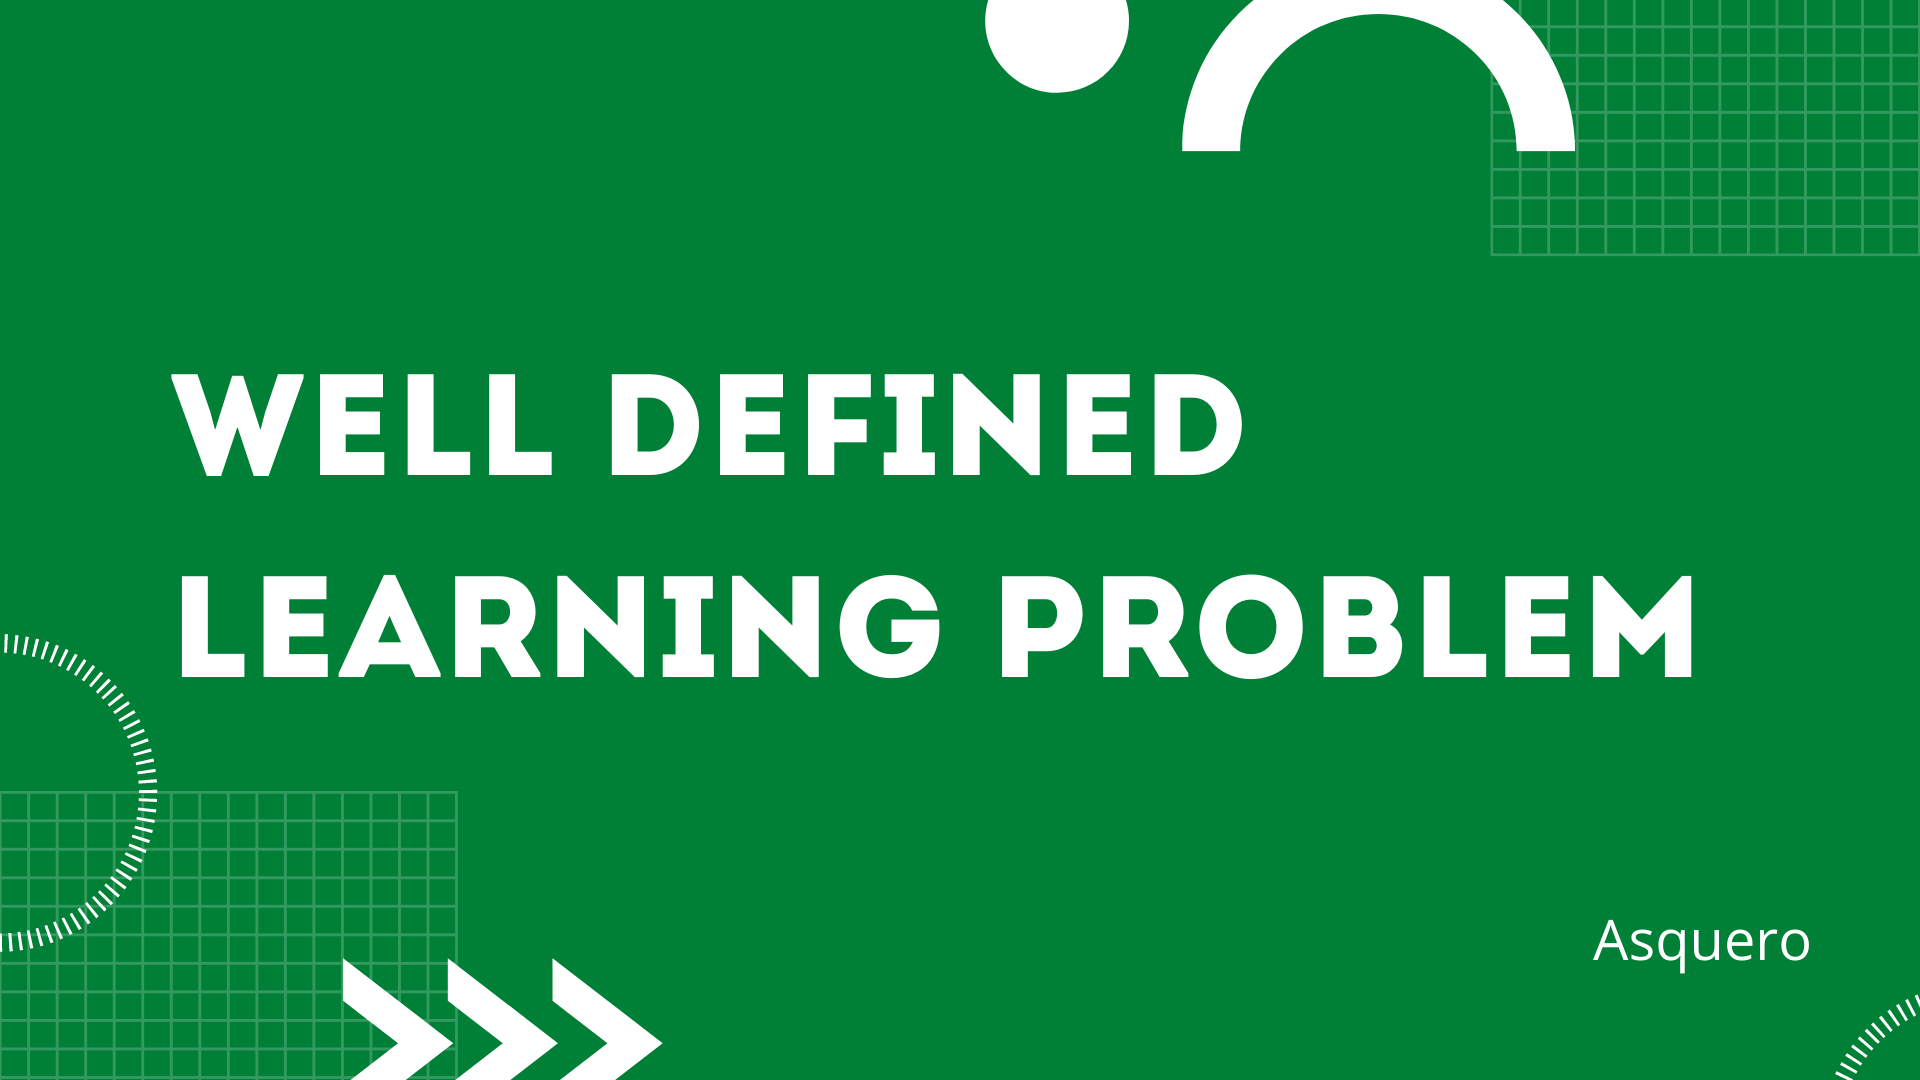 Well Defined Learning Problem